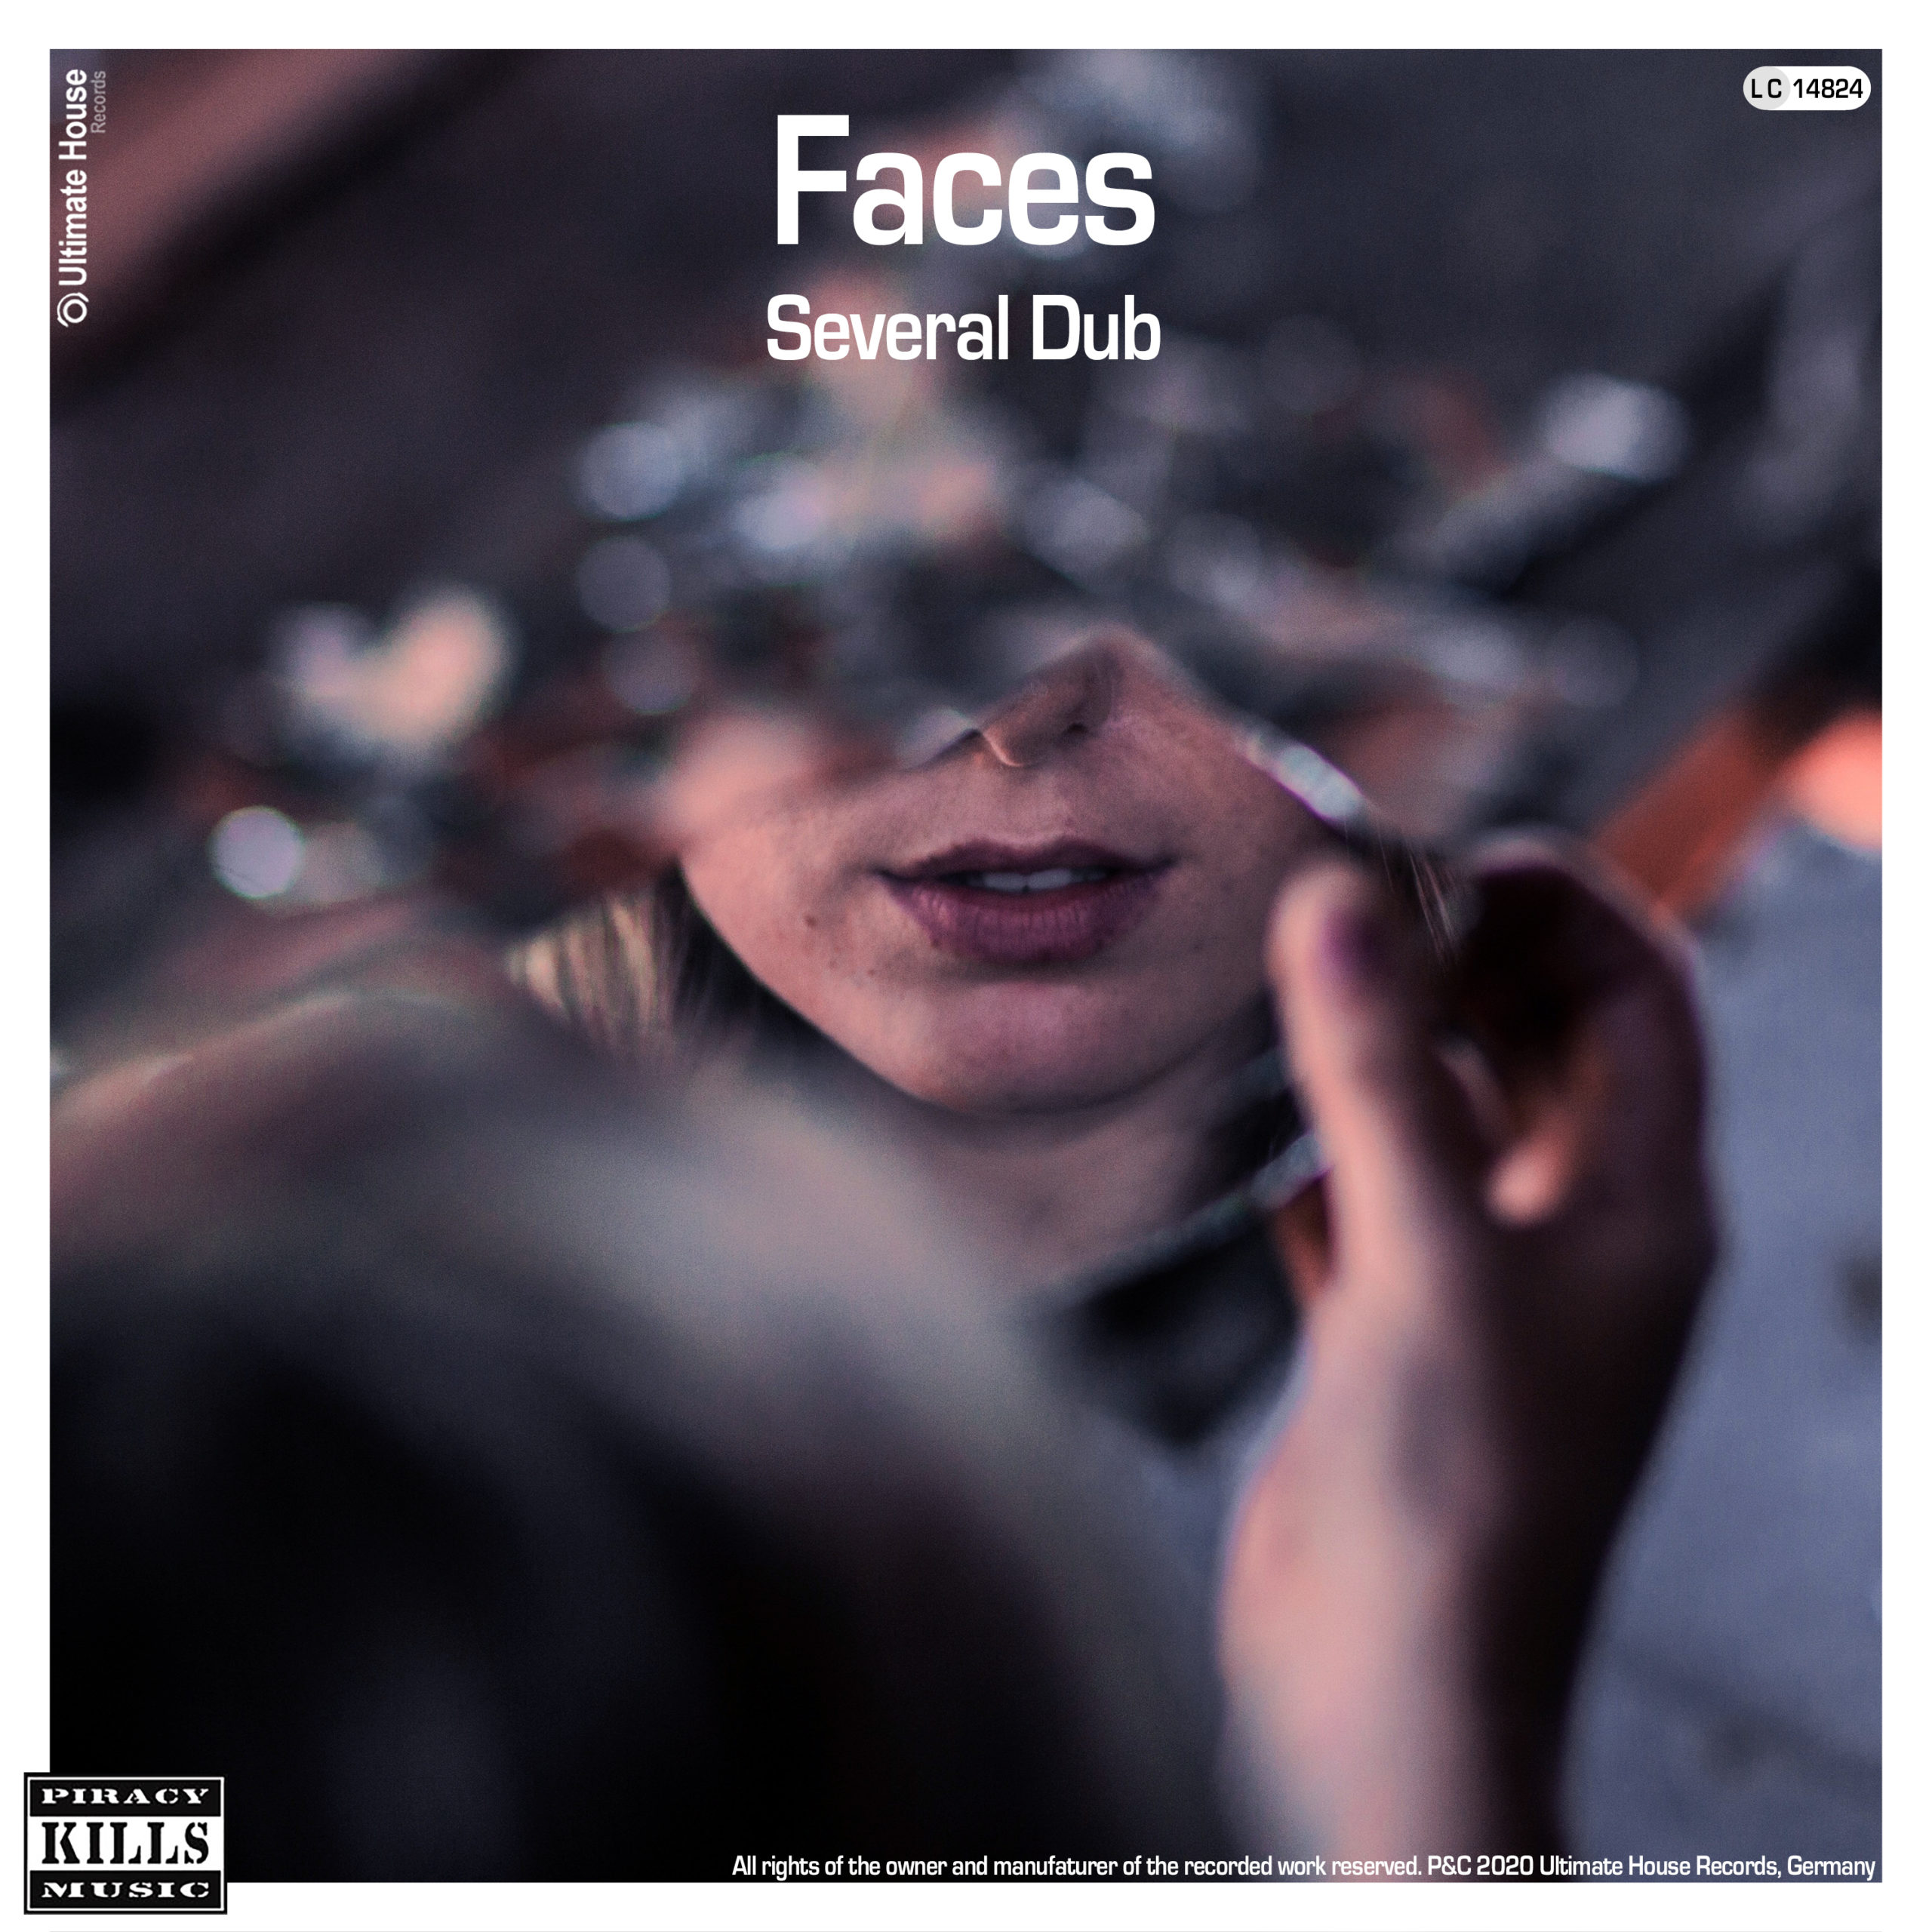 https://www.ultimate-house-records.com/wp-content/uploads/2020/01/137-Several_Dub-Faces-Cover_3000px-scaled.jpg